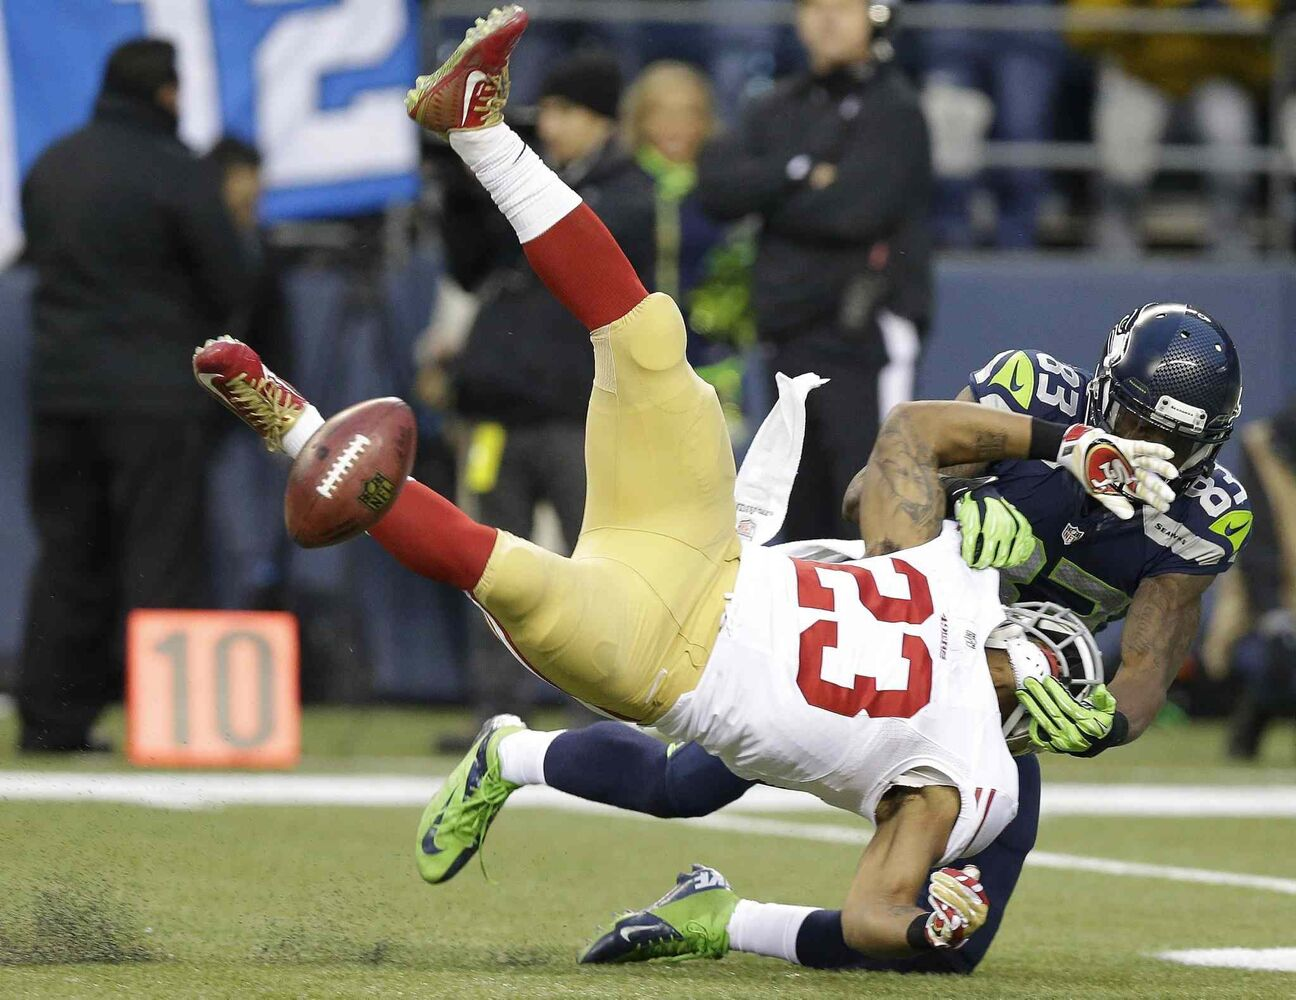 49ers' LaMichael James fumbles as he is hit by Seahawks Ricardo Lockette. (Elaine Thompson / The Associated Press)